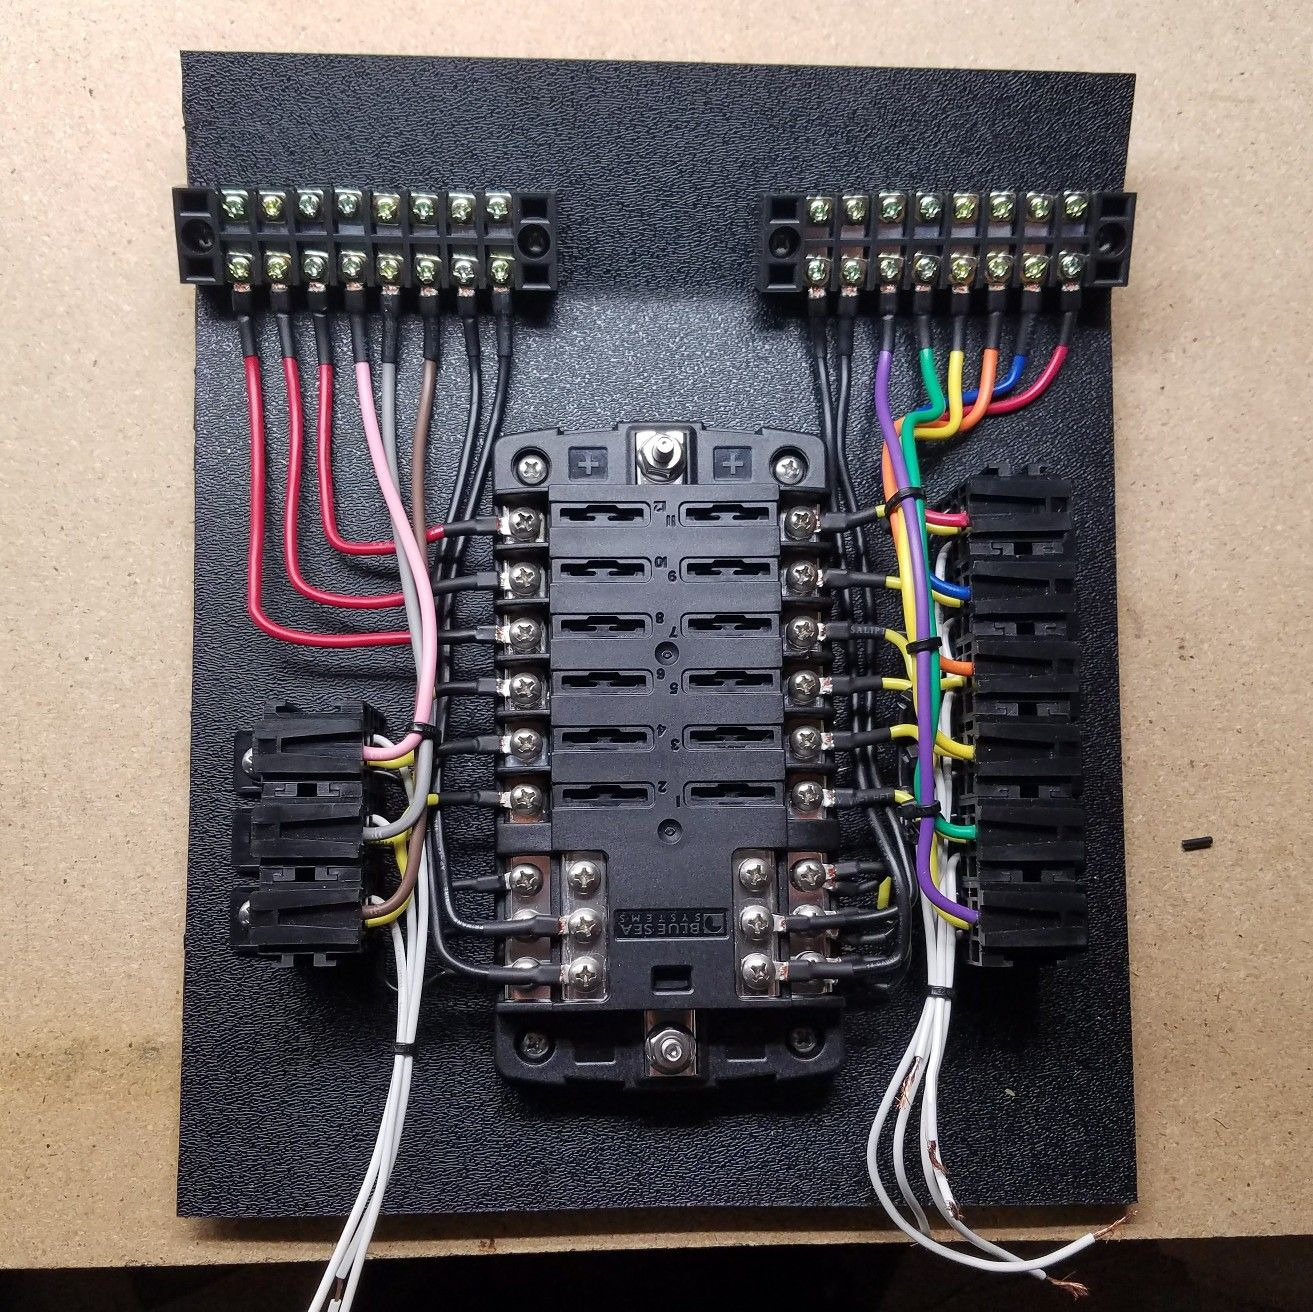 Auxiliary fuse and relay panel for my RZR | wires | Jeep accessories, Boat wiring, Car audio